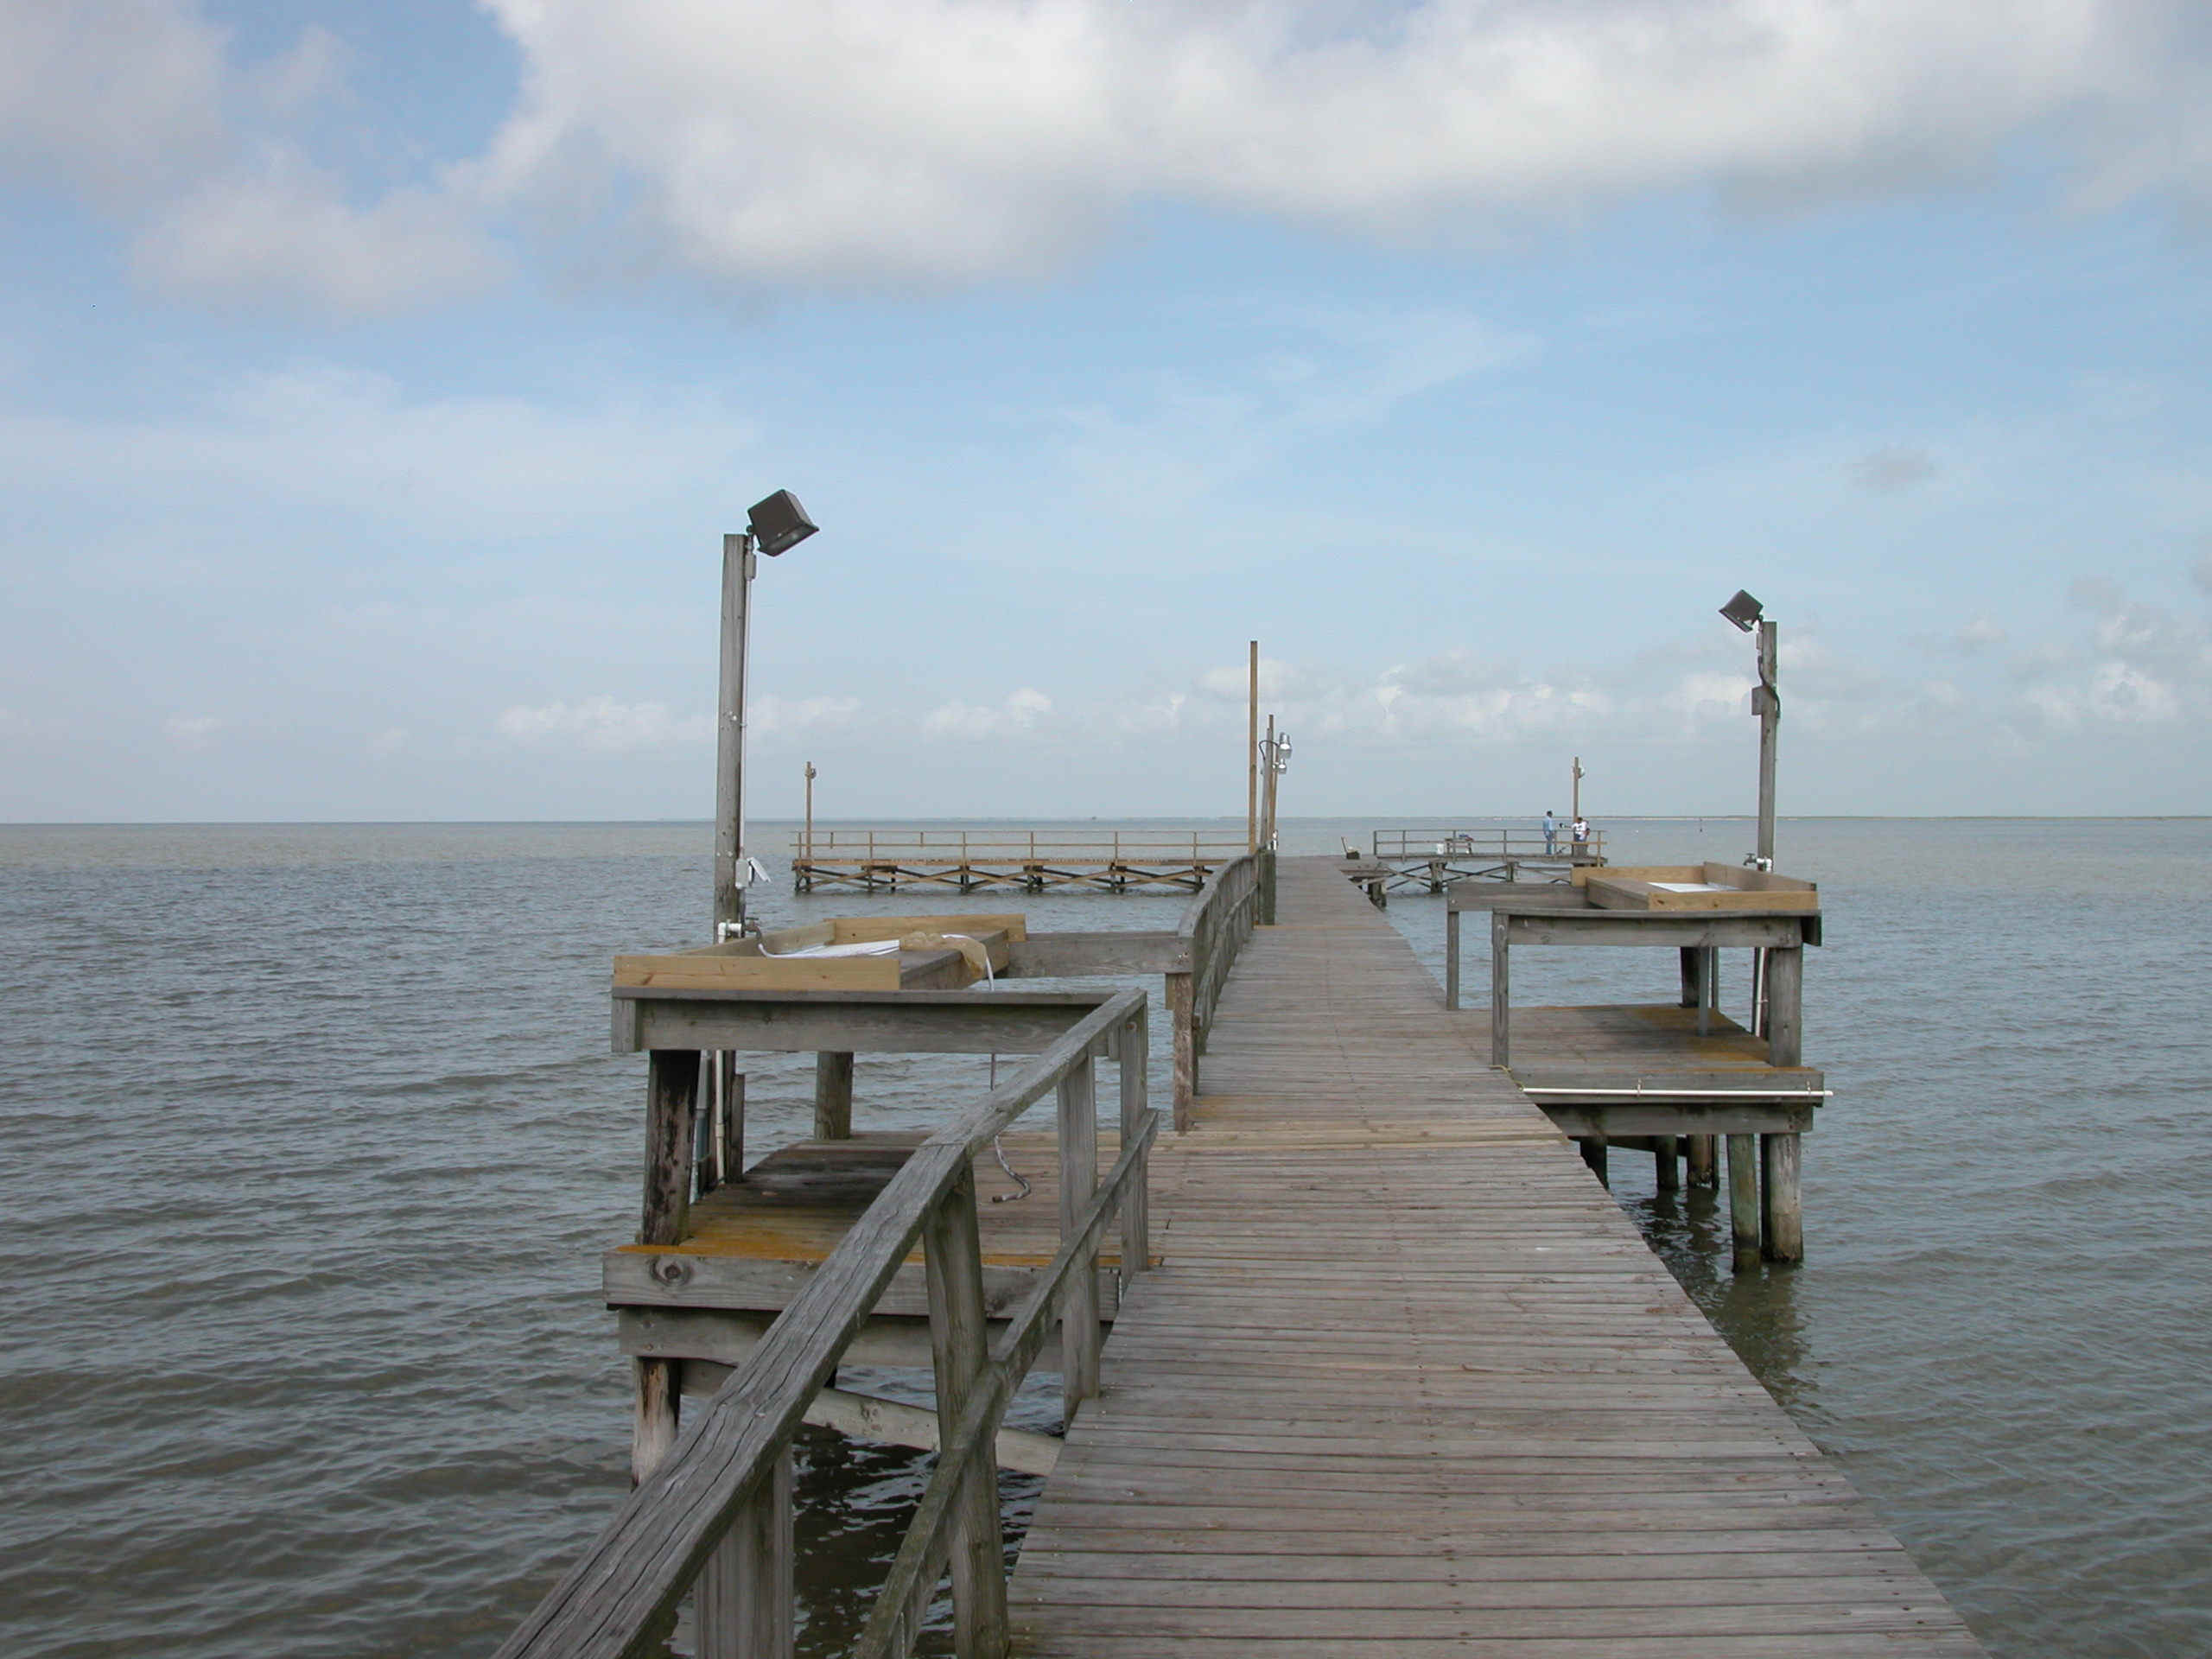 Land for sale in historic rockport texas near copano bay for Copano bay fishing